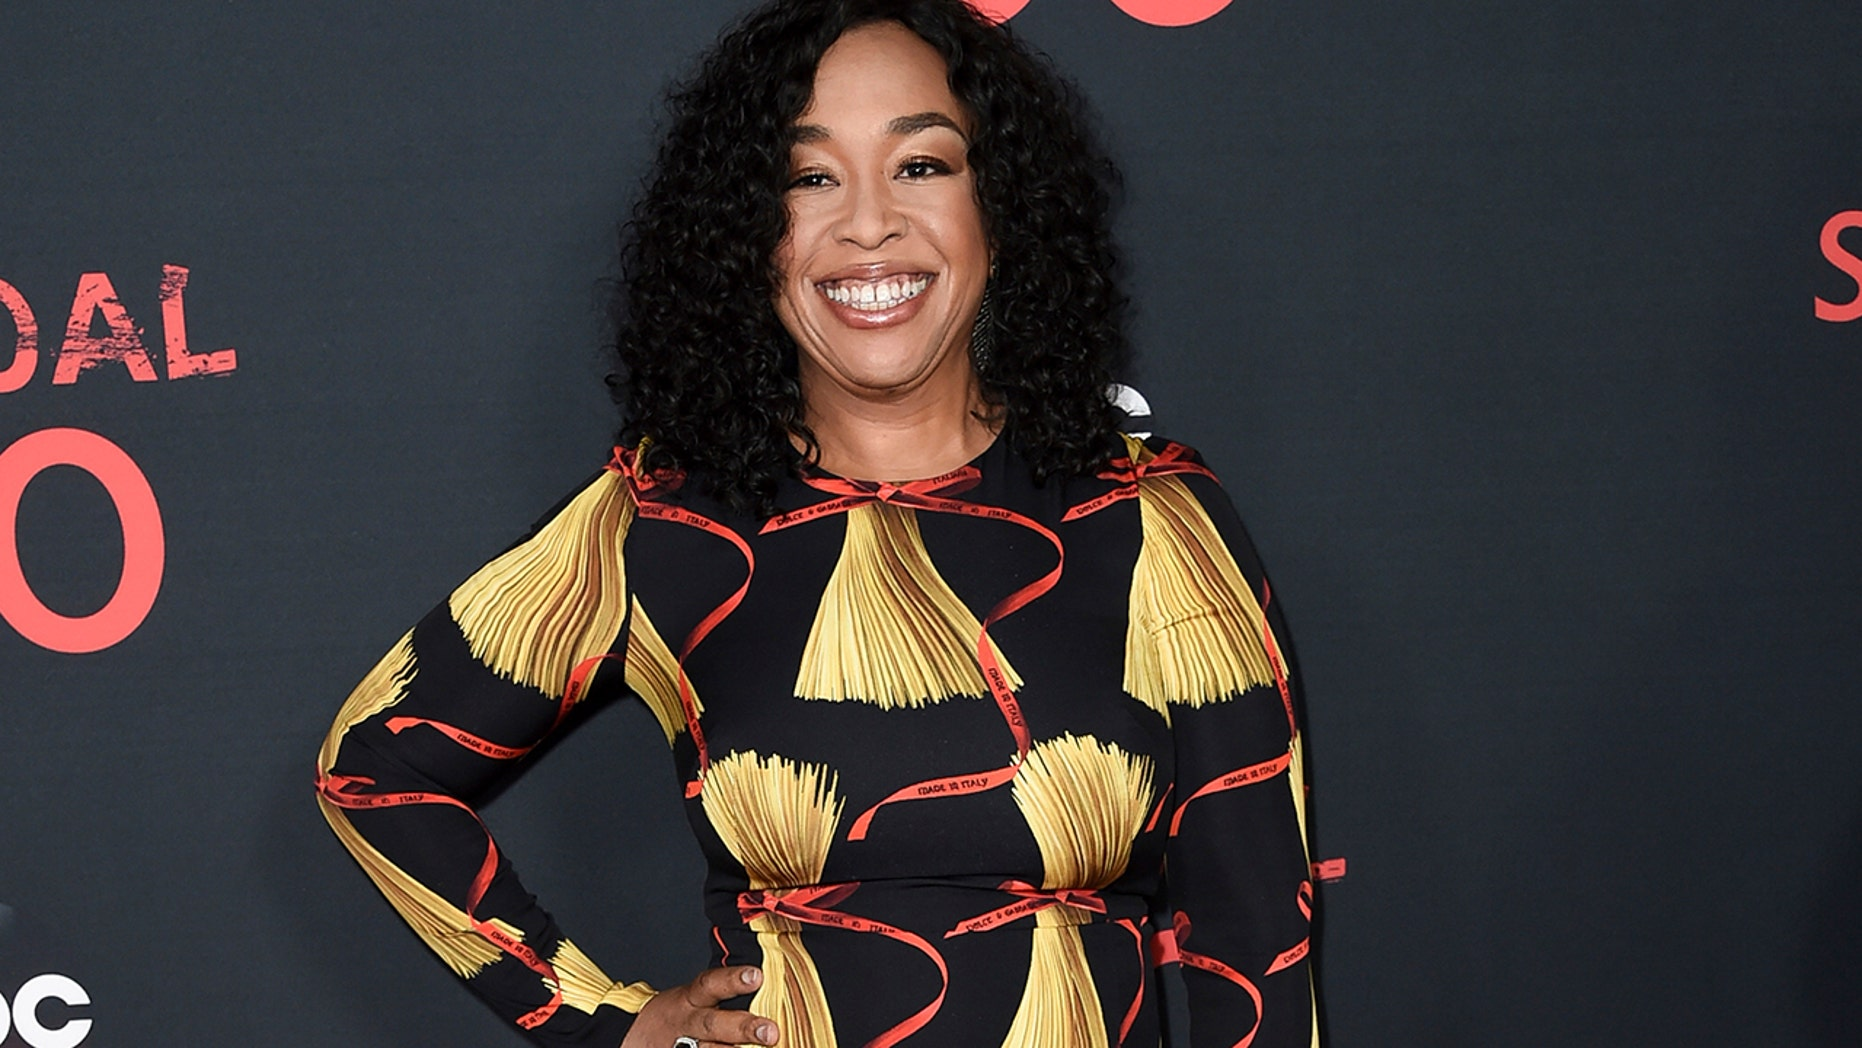 """In this April 8, 2017, file photo, Shonda Rhimes attends the """"Scandal"""" 100th Episode Celebration at Fig & Olive in West Hollywood, Calif. Netflix announced late Sunday, Aug. 13, that Rhimes and her company Shondaland had agreed to produce new series and context for the streaming service."""